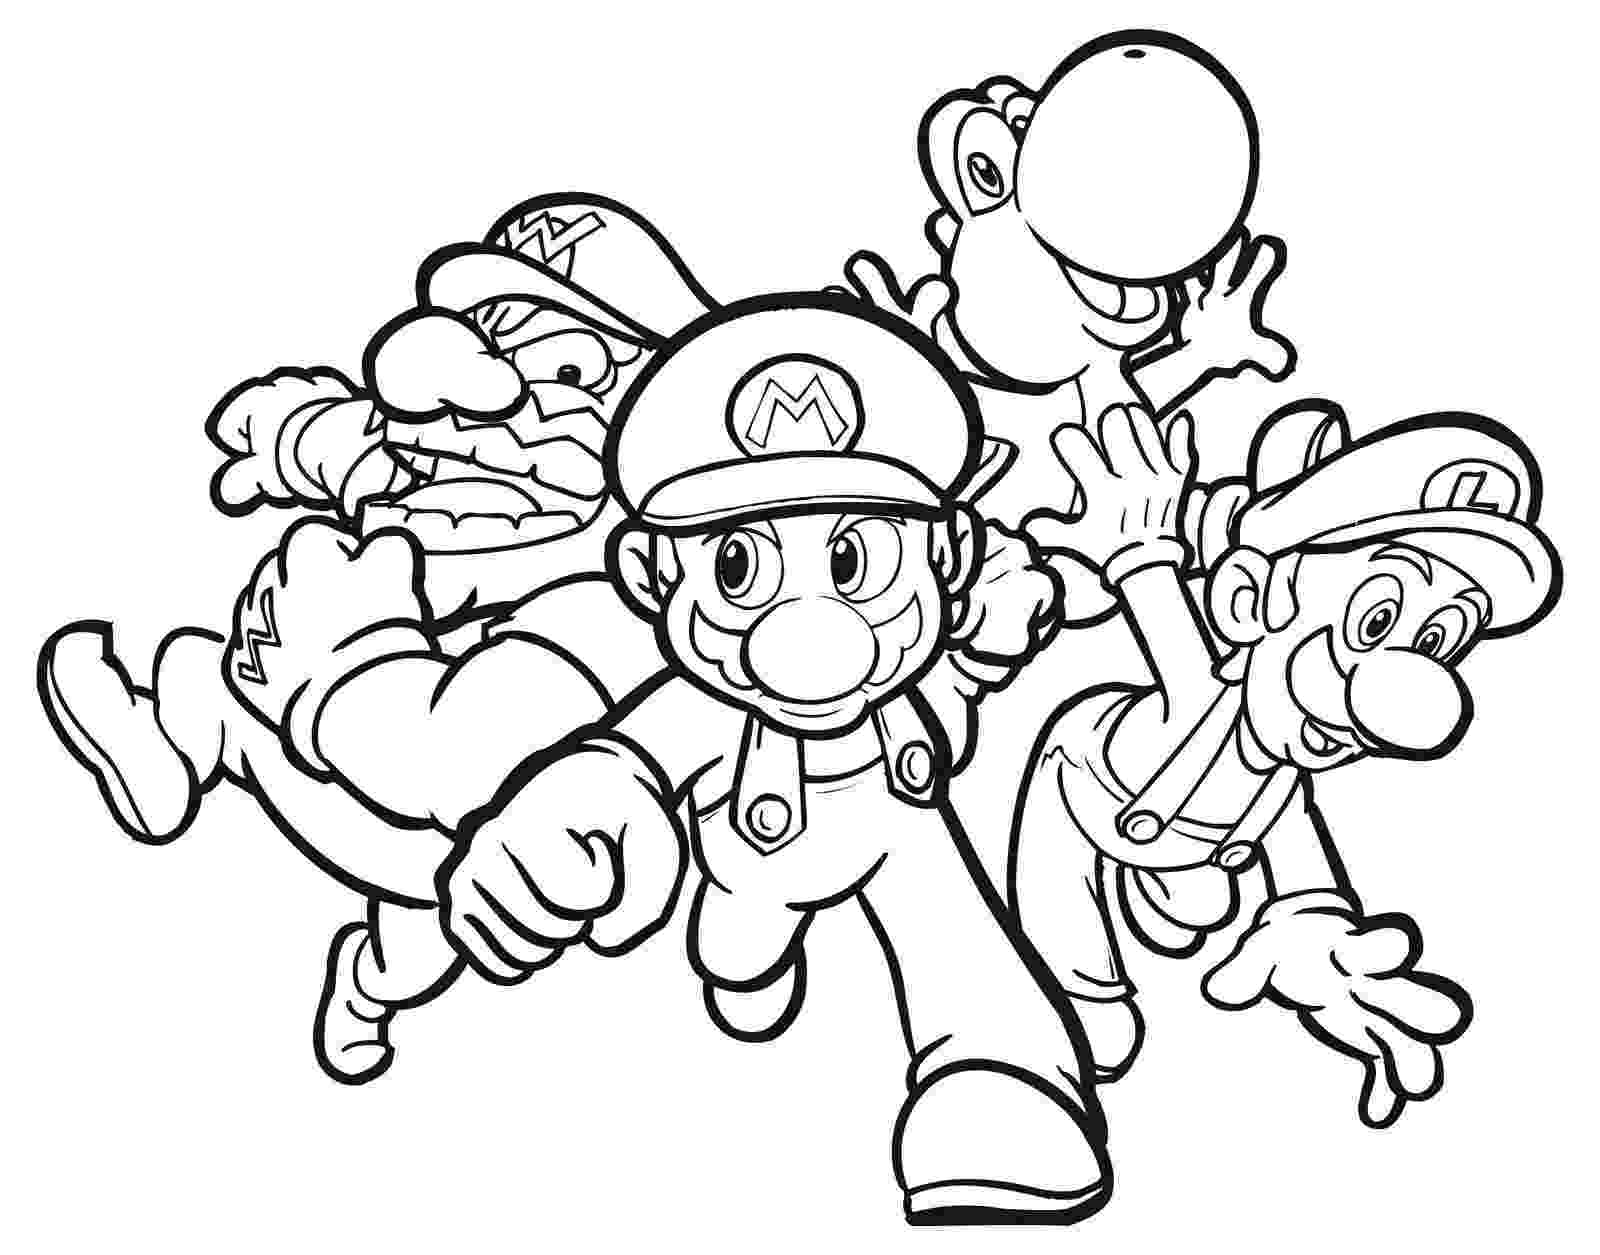 cool coloring pages printable coloring pages for kids coloring pages for kids coloring pages cool